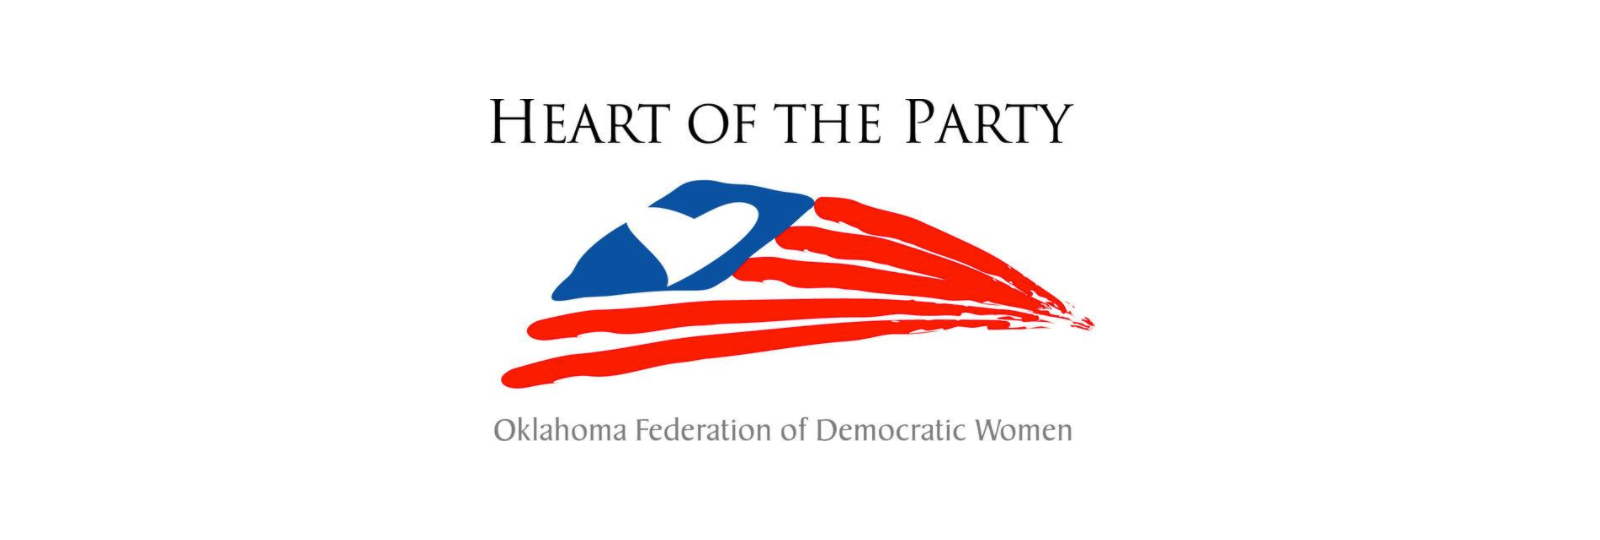 Heart of the Party - Oklahoma Federation of Democratic Women